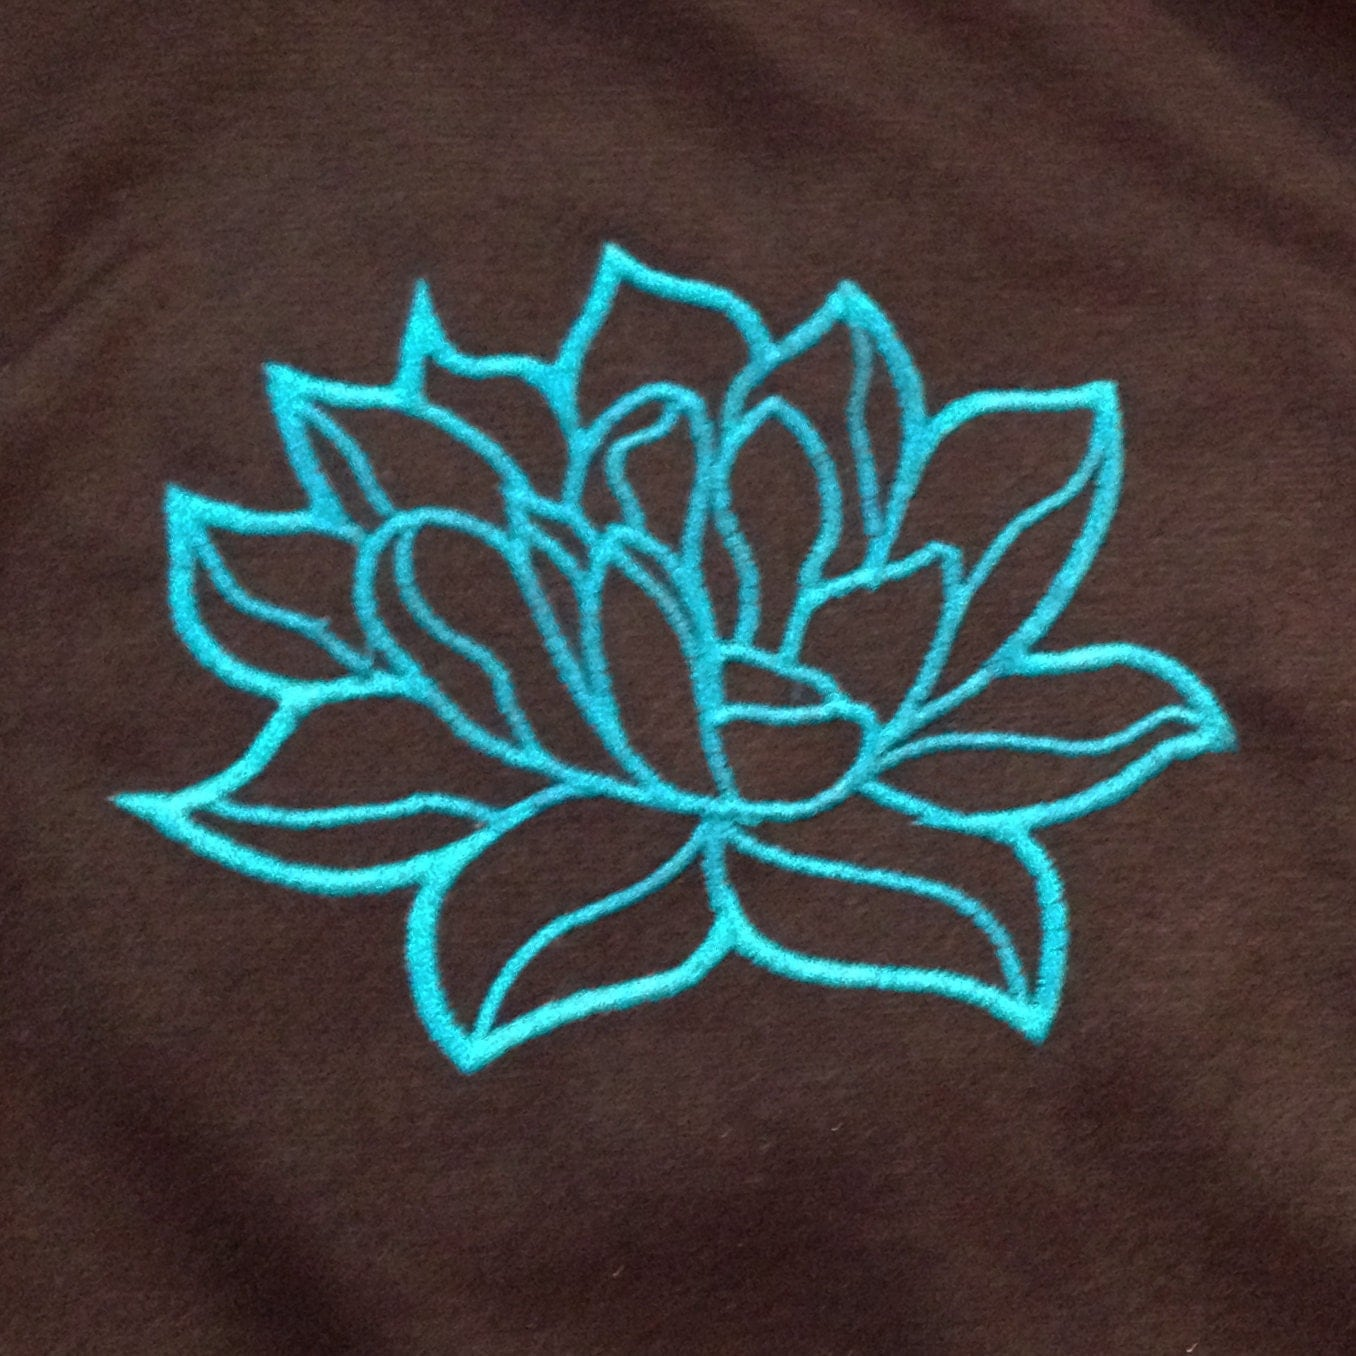 Modern and elegant lotus flower applique embroidery design